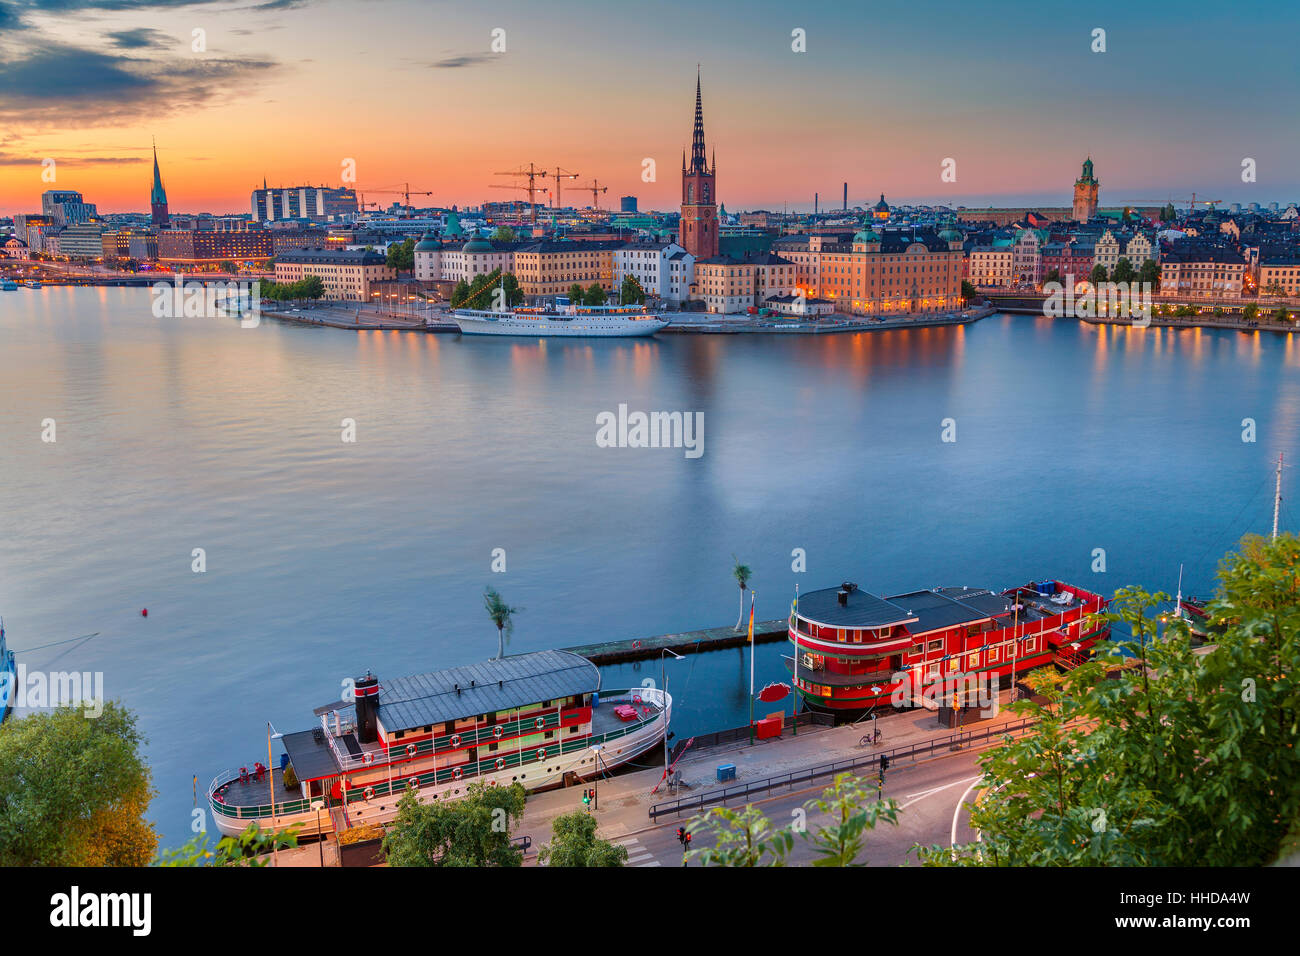 Stockholm. Cityscape image of Stockholm, Sweden during twilight blue hour. - Stock Image